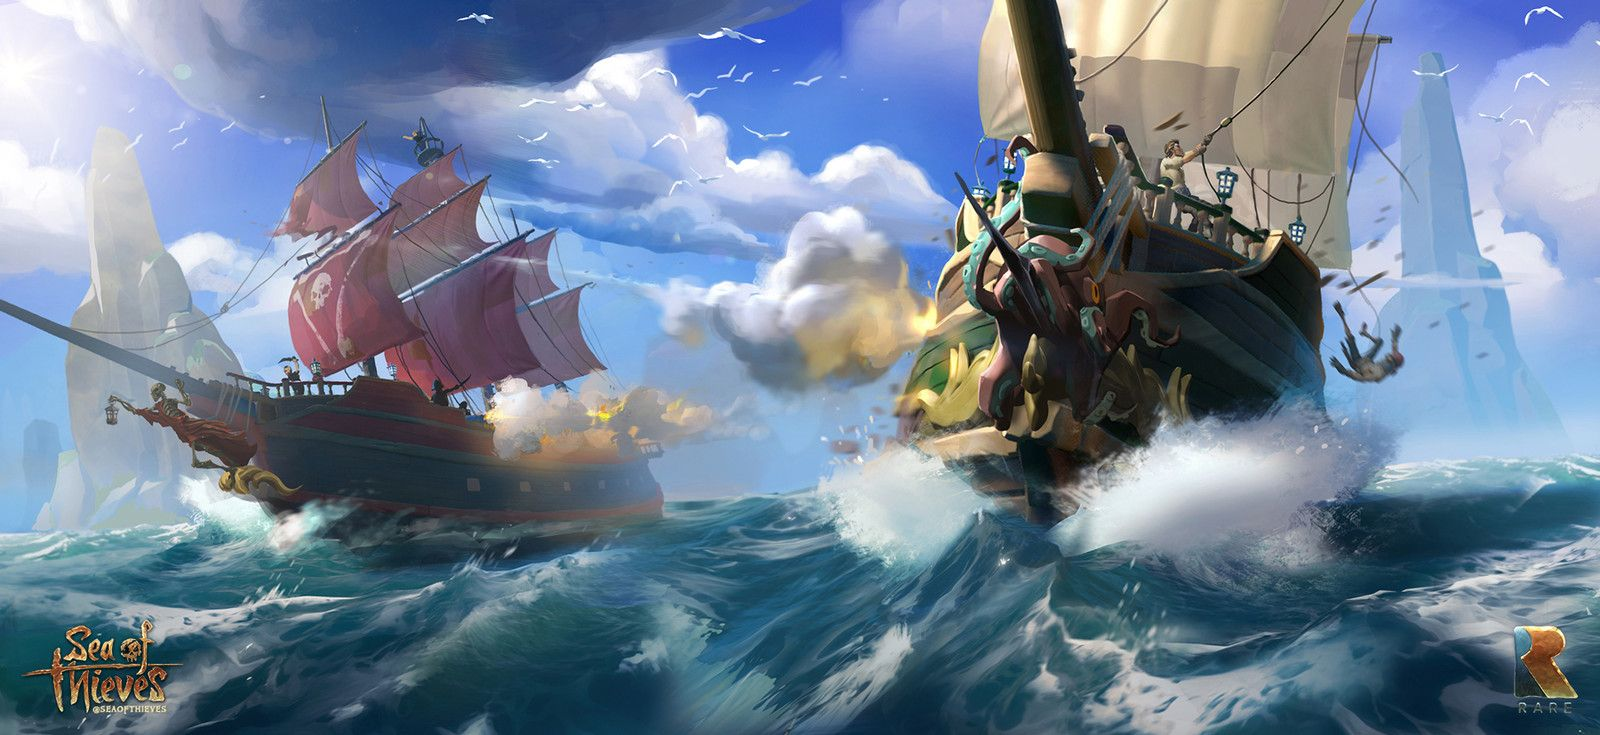 Sea Of Thieves_concept, Ricardo Robles on ArtStation at